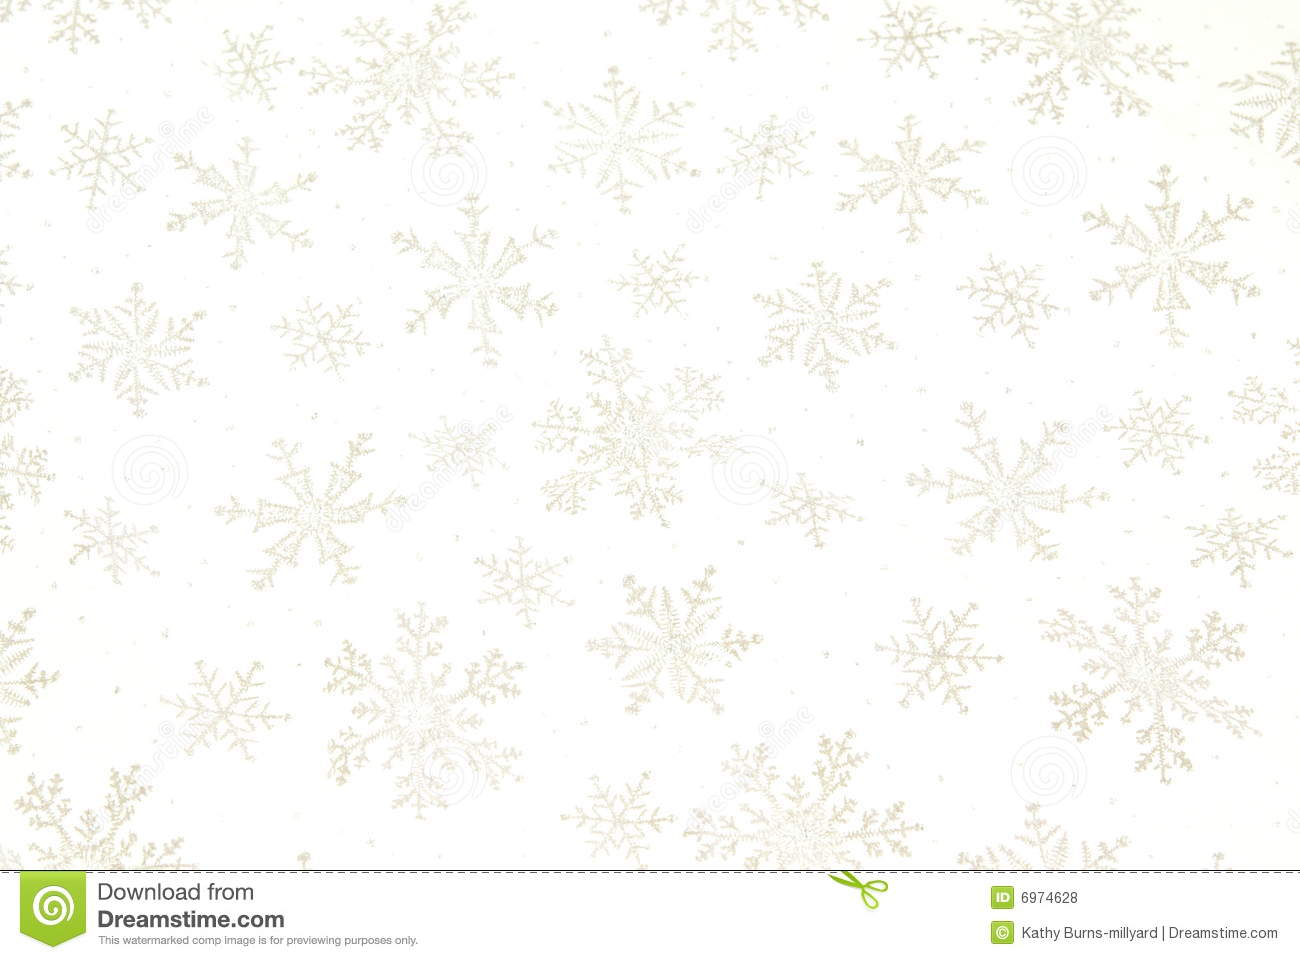 Snowflake Background With Shiny Metallic Snowflakes On White Gauzy